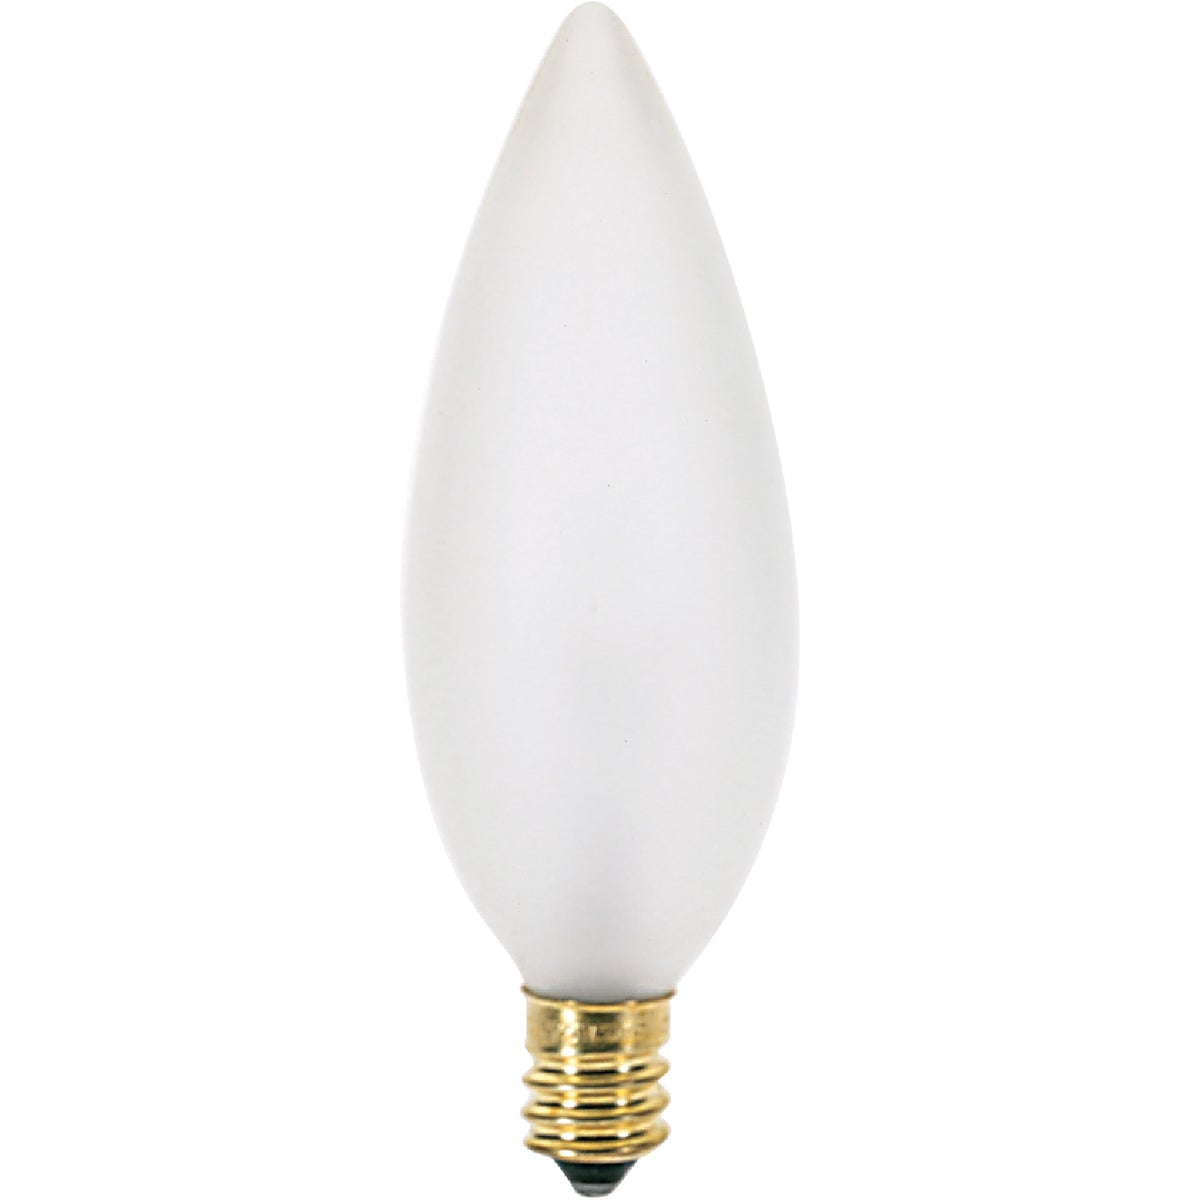 60W FROST TORPEDO BULB - 03787 60B10/F/CD2 by Westinghouse Lightng